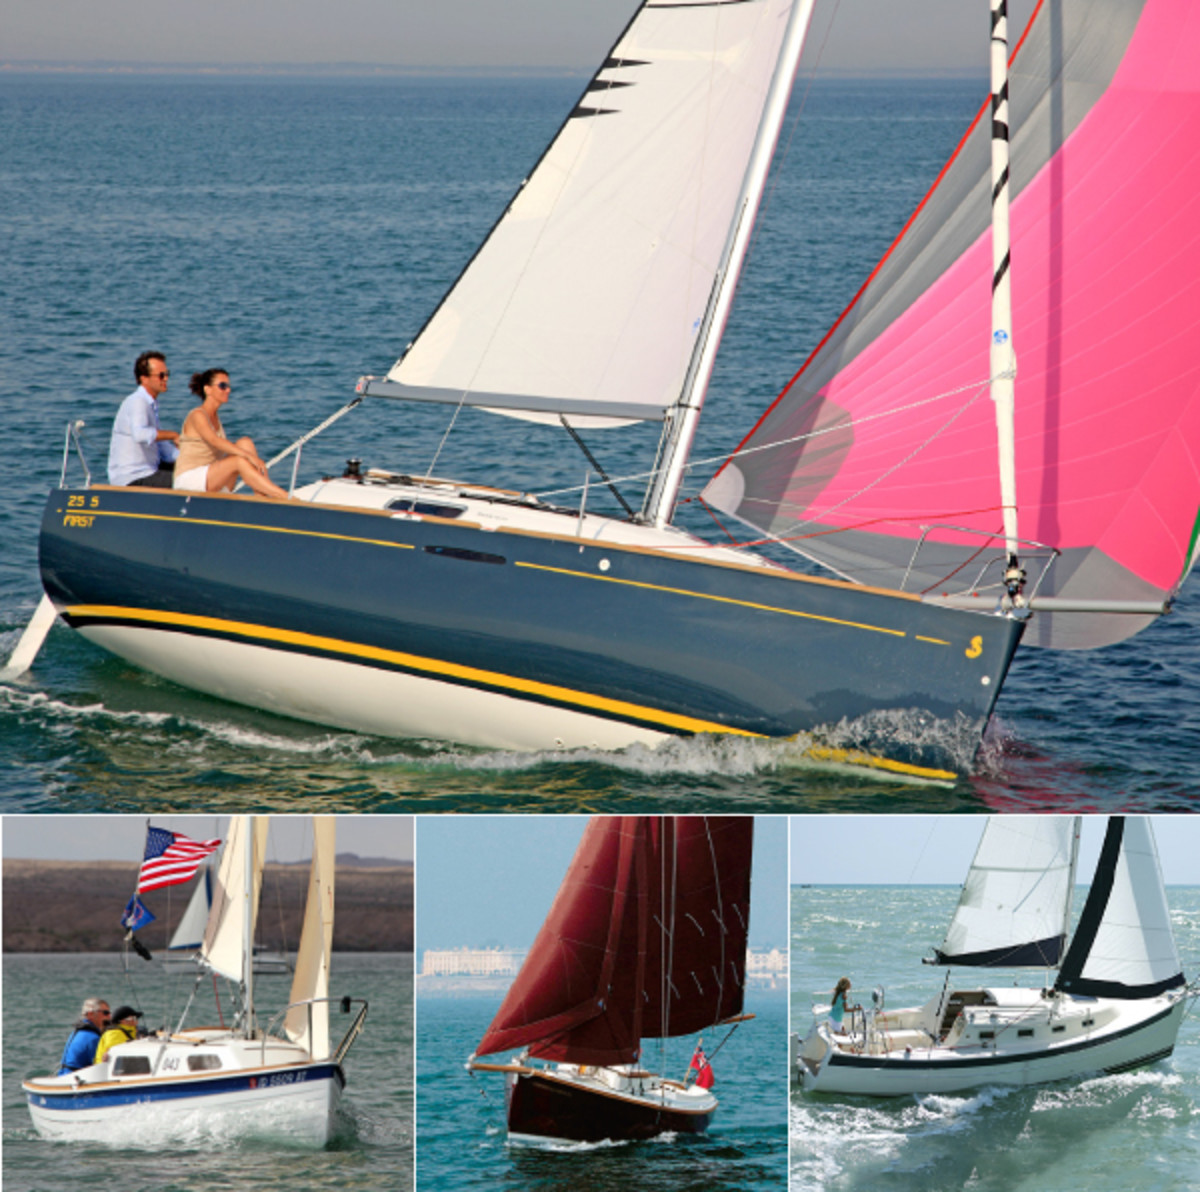 Who says you have to pack it in as the sun goes down? These small boats are as cozy as they are fun: (clockwise from top) the Beneteau First 25 S, the Seaward 26 RK, the Cornish Crabber 2 and the Sage 17